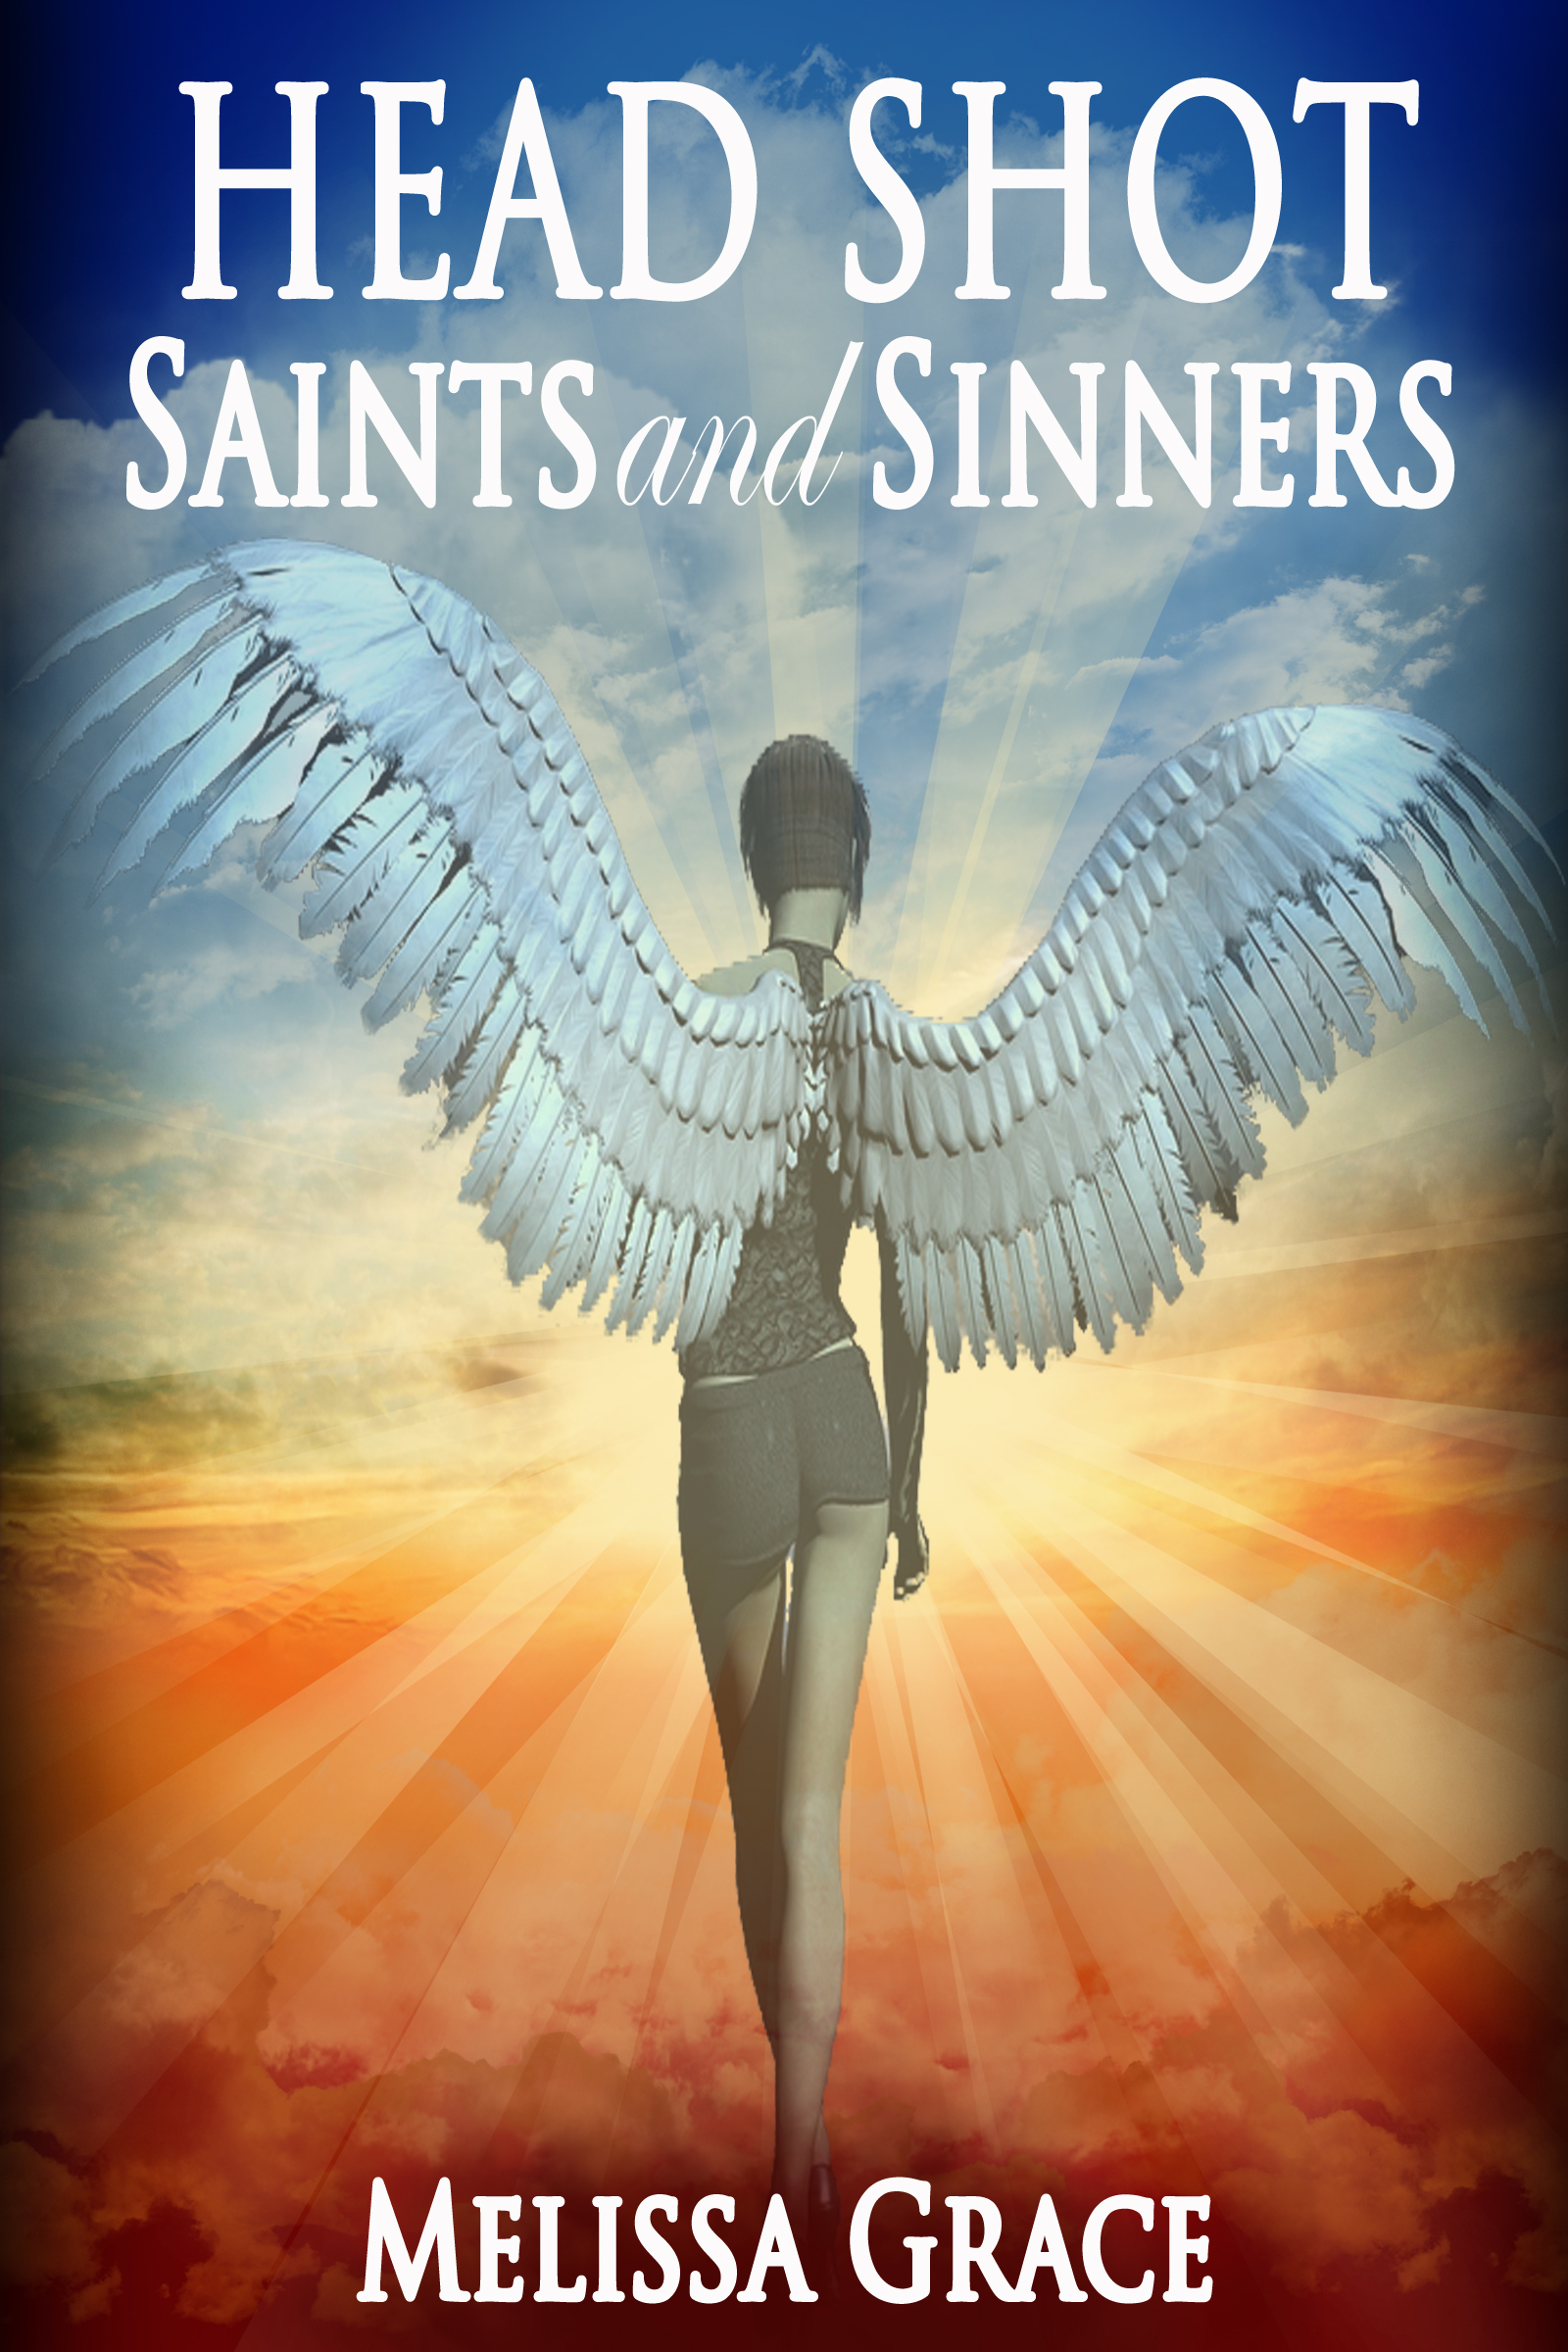 Head Shot: Saints and Sinners